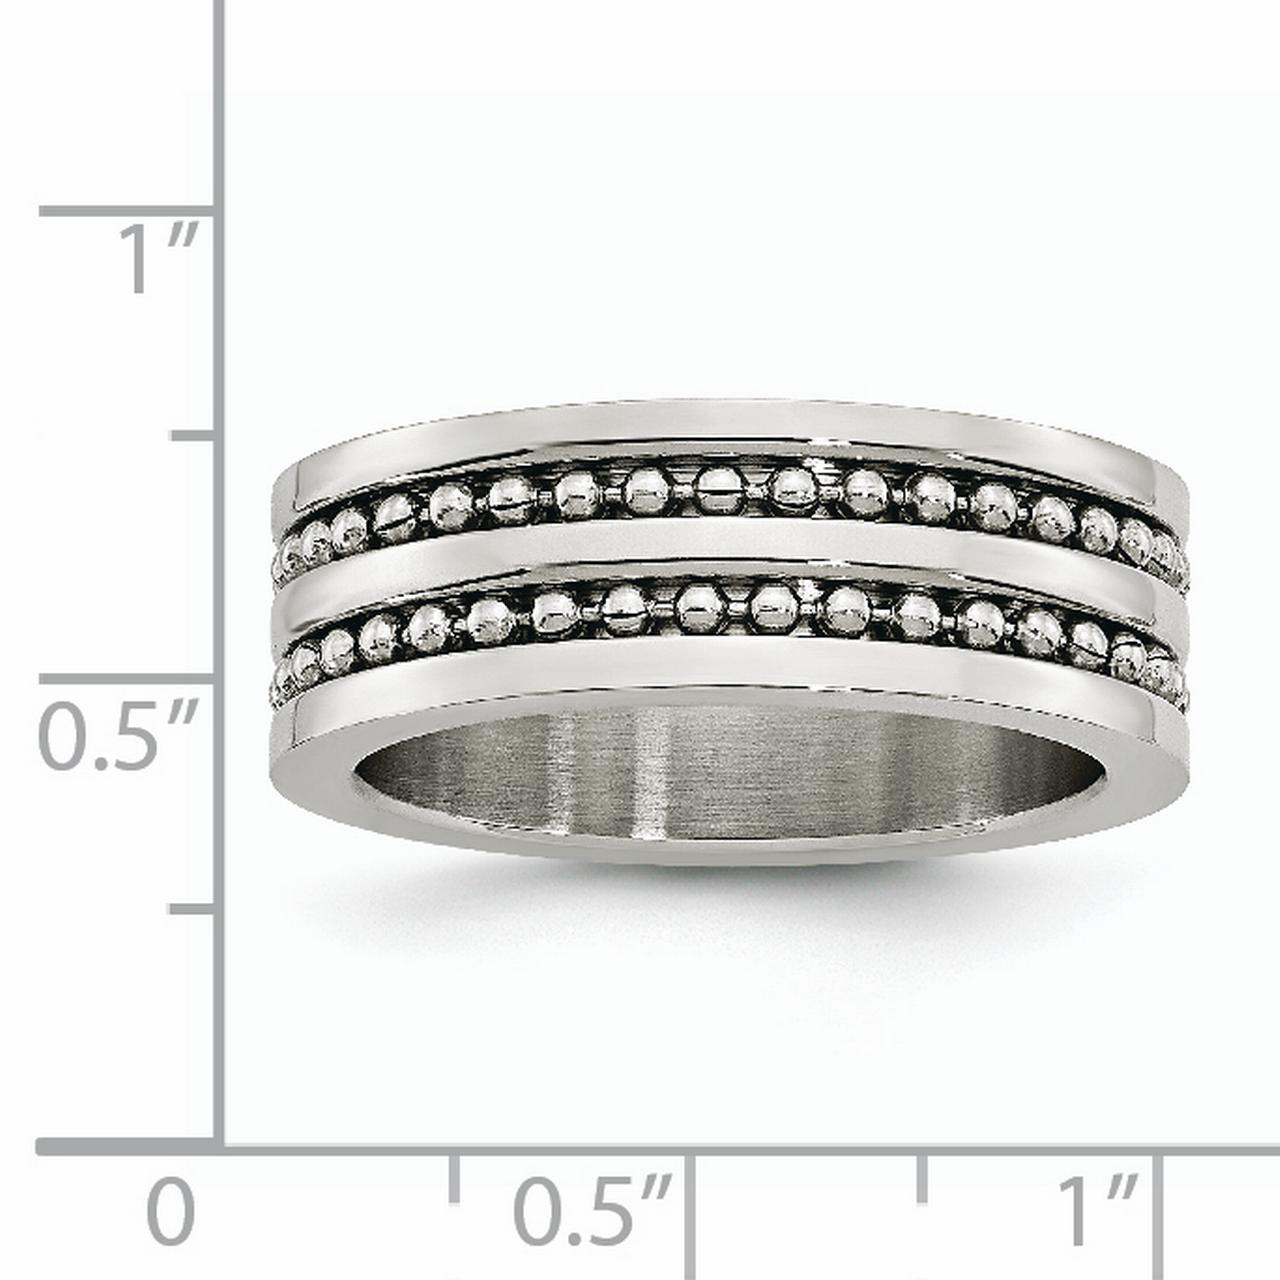 Stainless Steel 8mm Double Row Beaded Brushed Wedding Ring Band Size 11.50 Type Of Fashion Jewelry Gifts For Women For Her - image 2 of 6